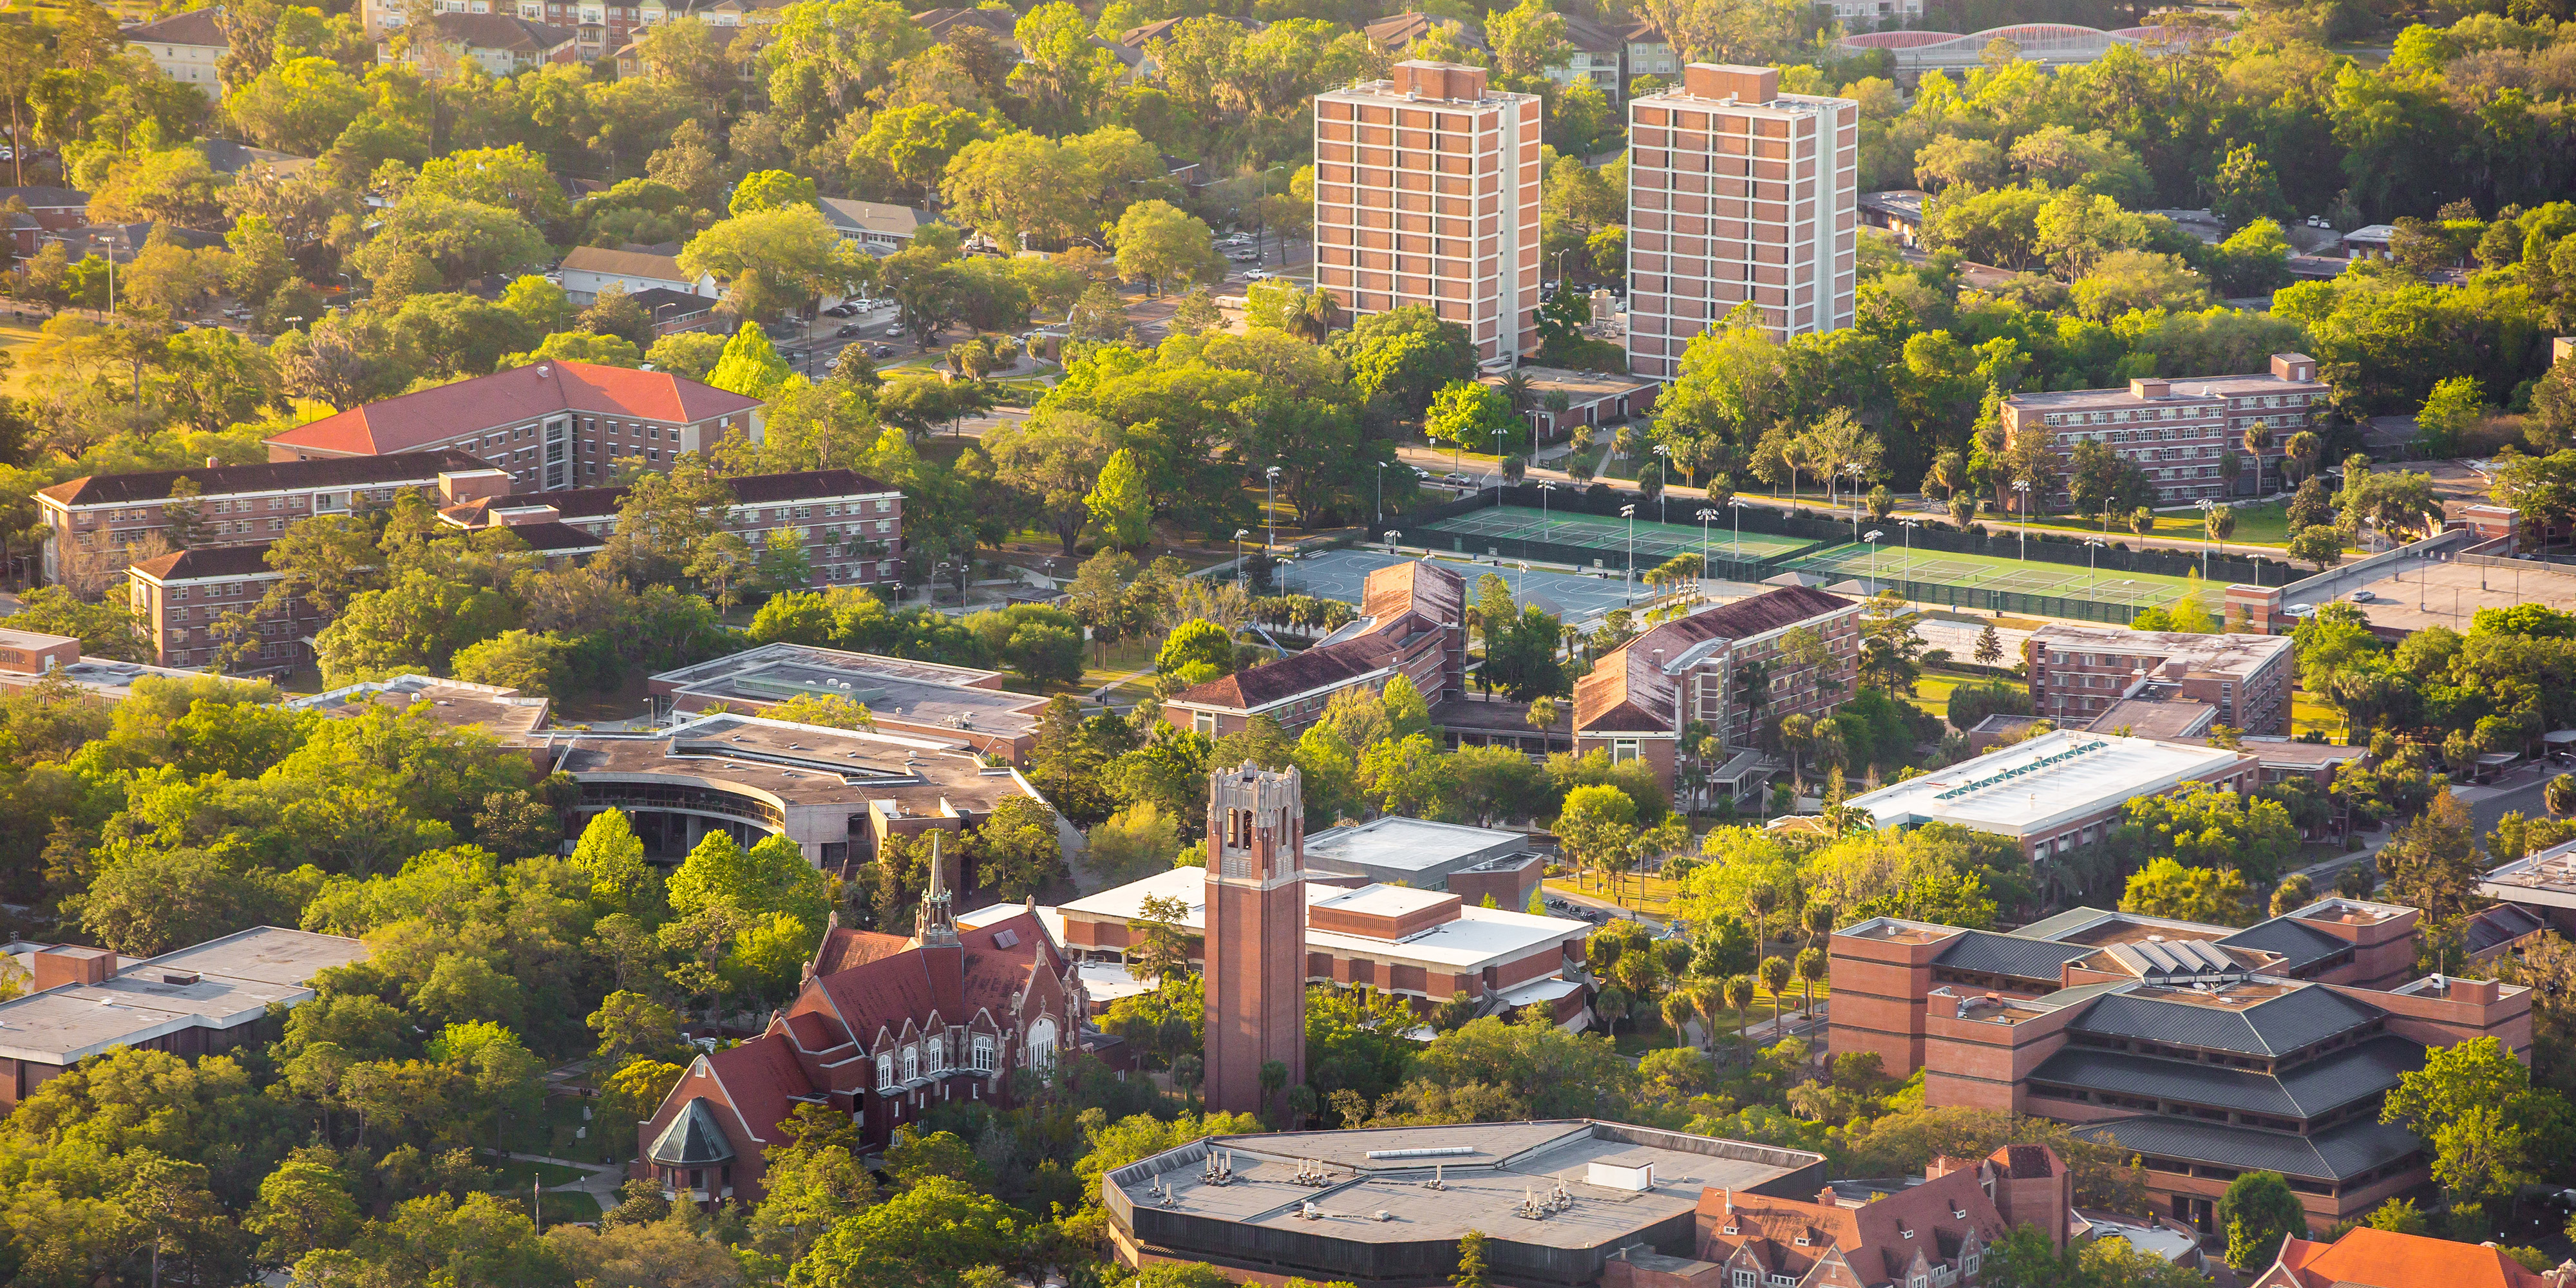 Aerial photo of UF Campus showing Beaty Towers prominently